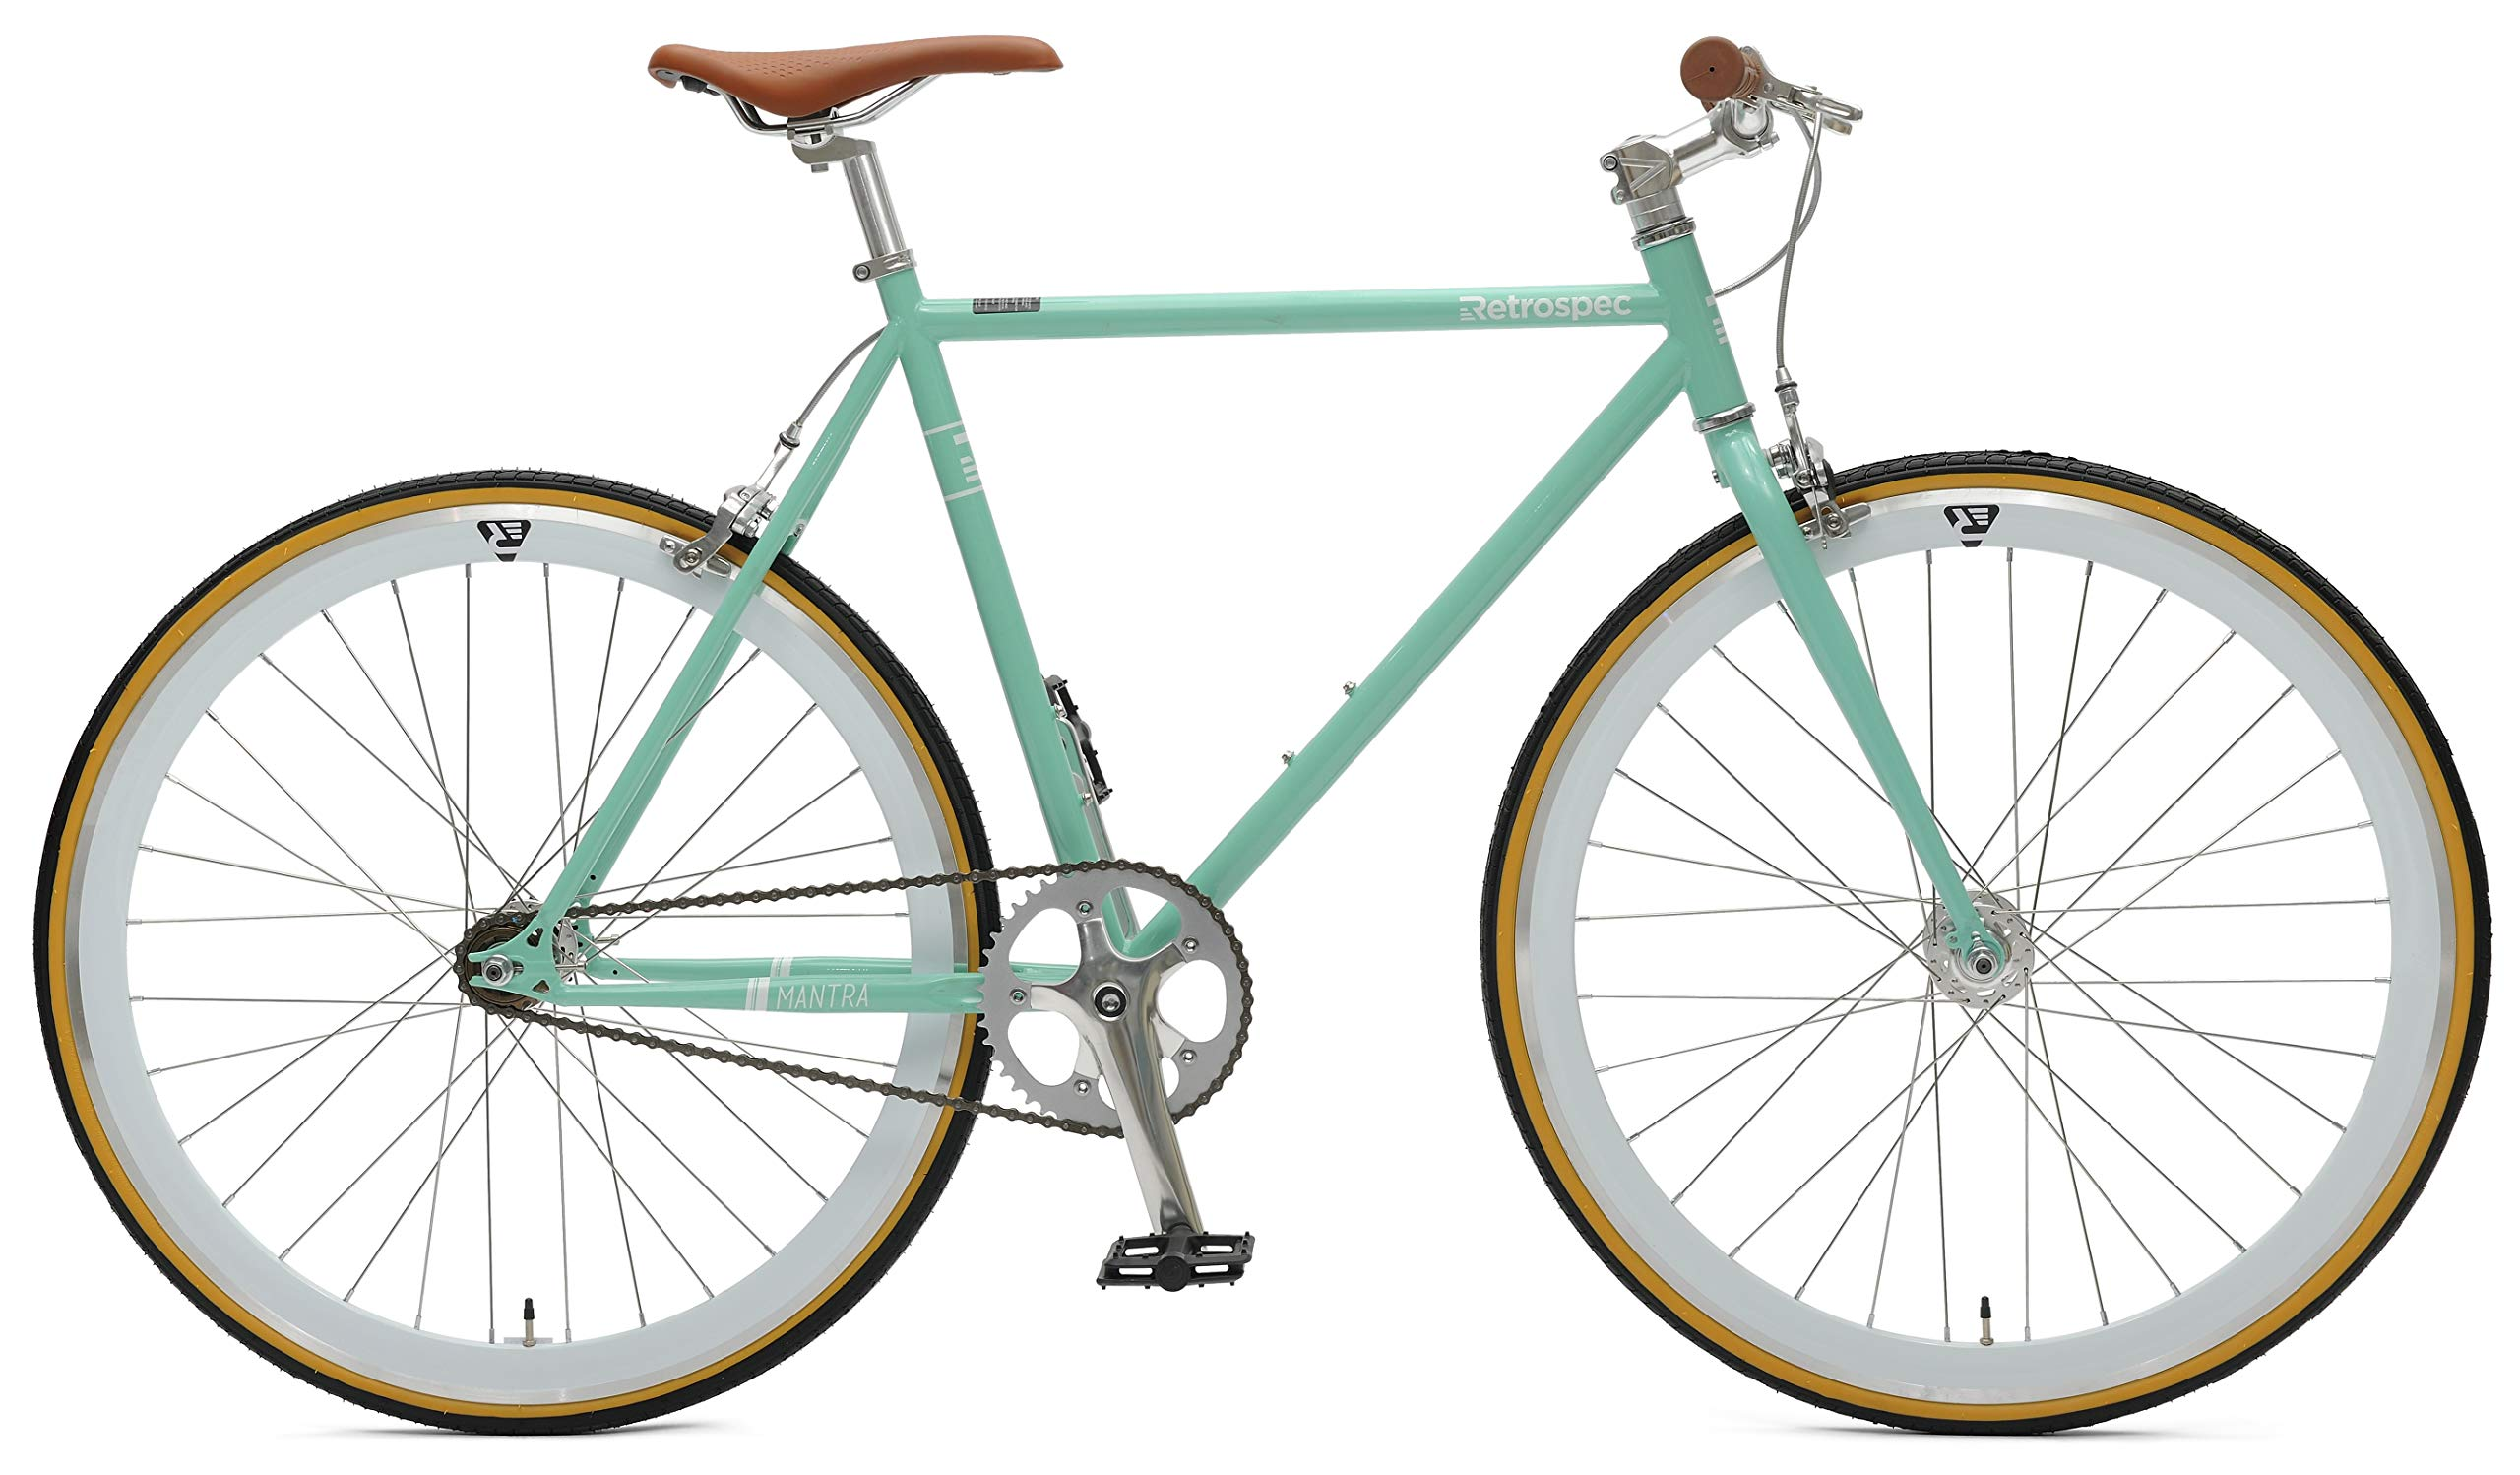 Retrospec Bicycles Mantra V2 Single Speed Fixed Gear Bicycle Celeste 49cm Small Buy Online At Best Price In Uae Amazon Ae